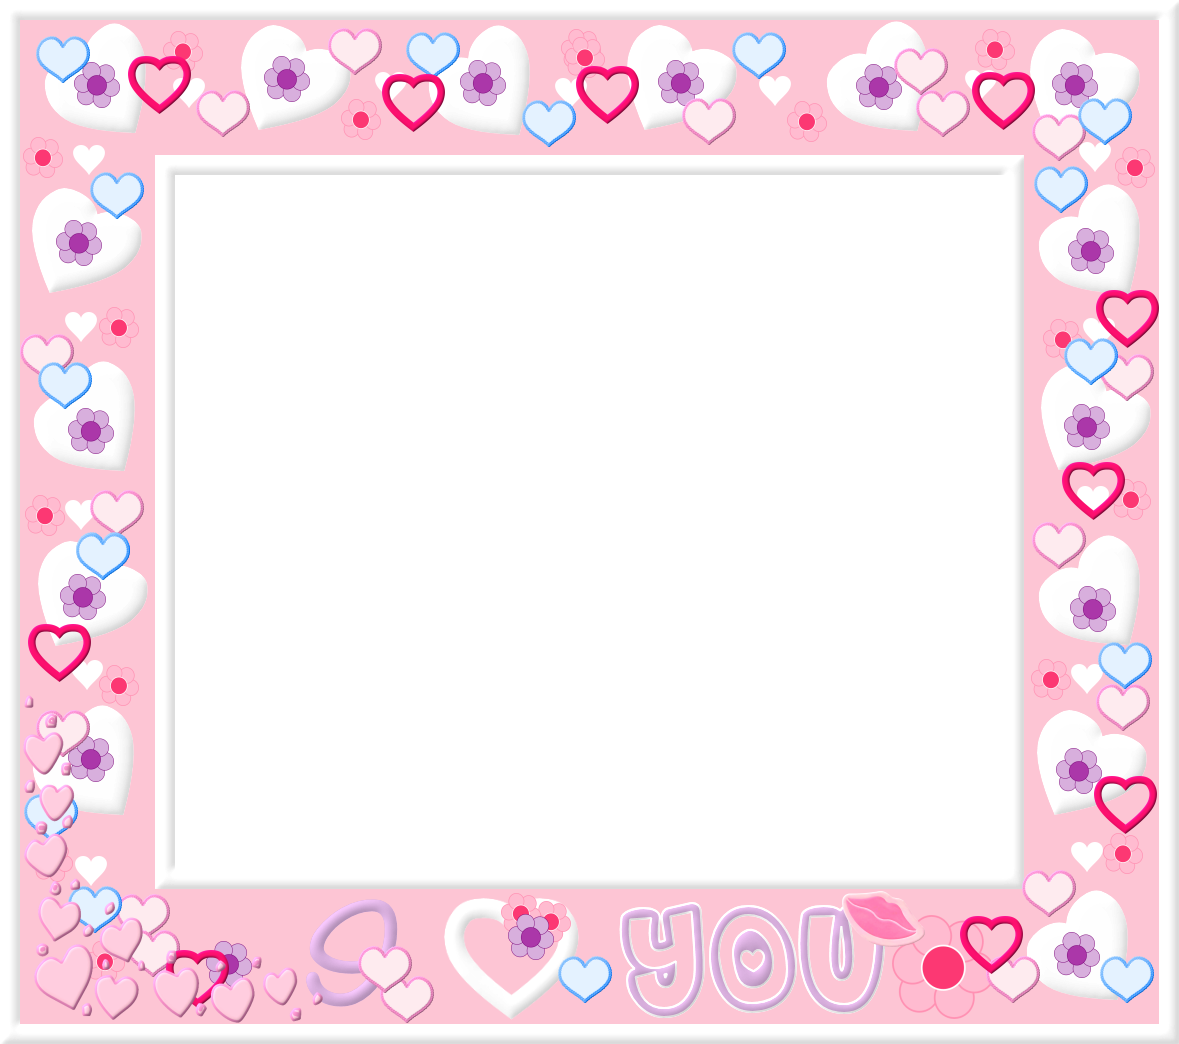 Border png tumblr. Free pink and white